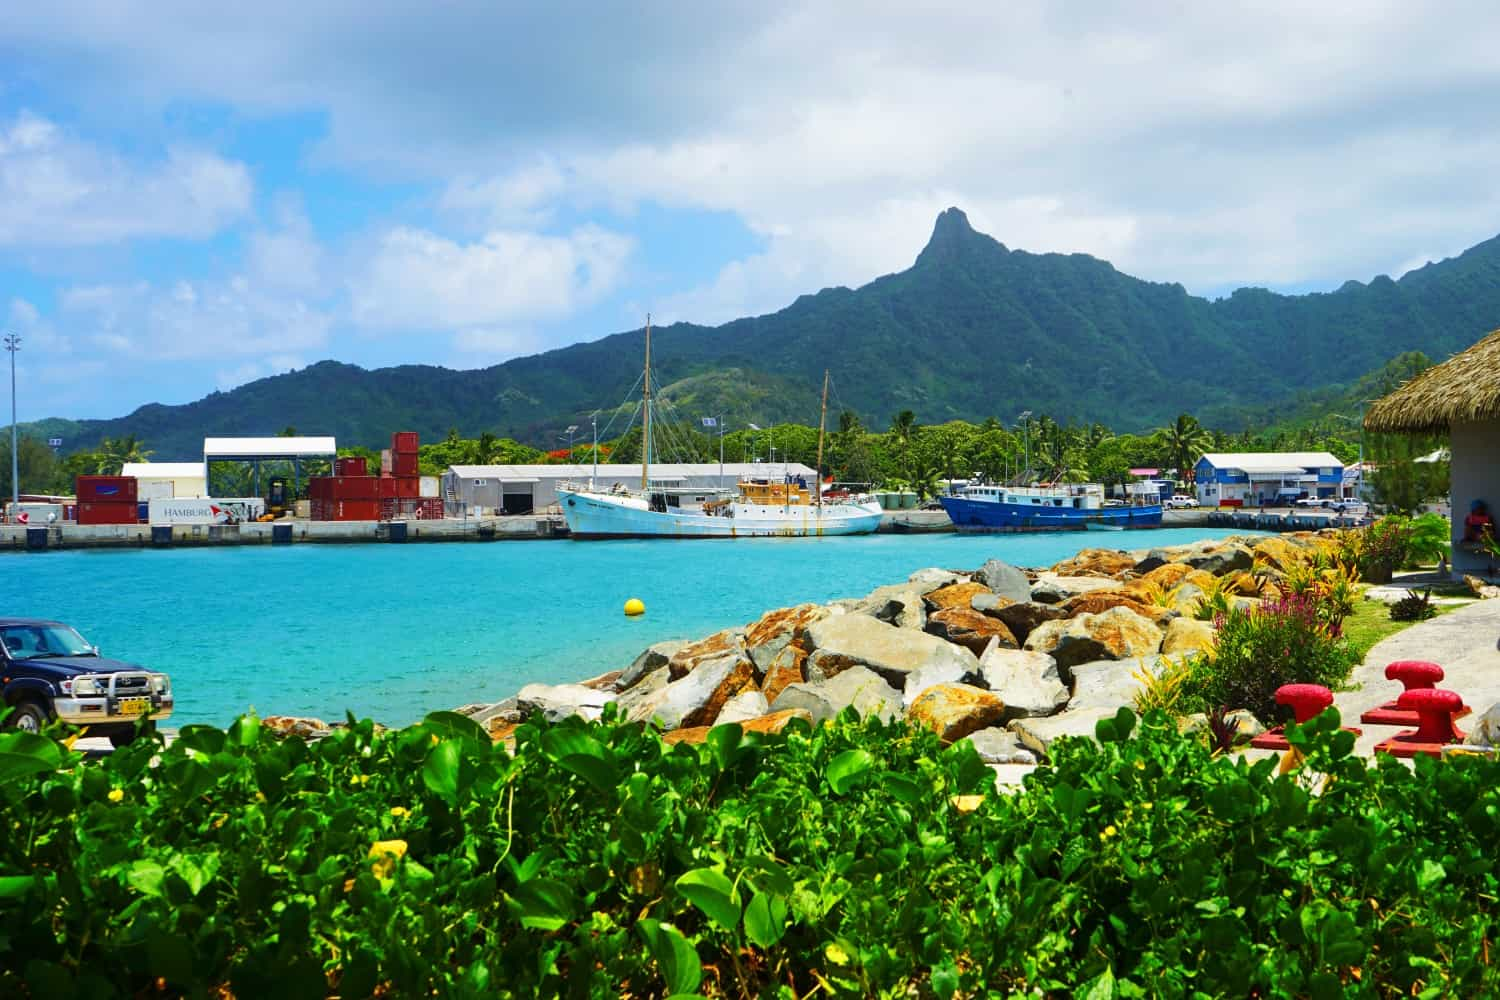 The picturesque harbour in Rarotonga